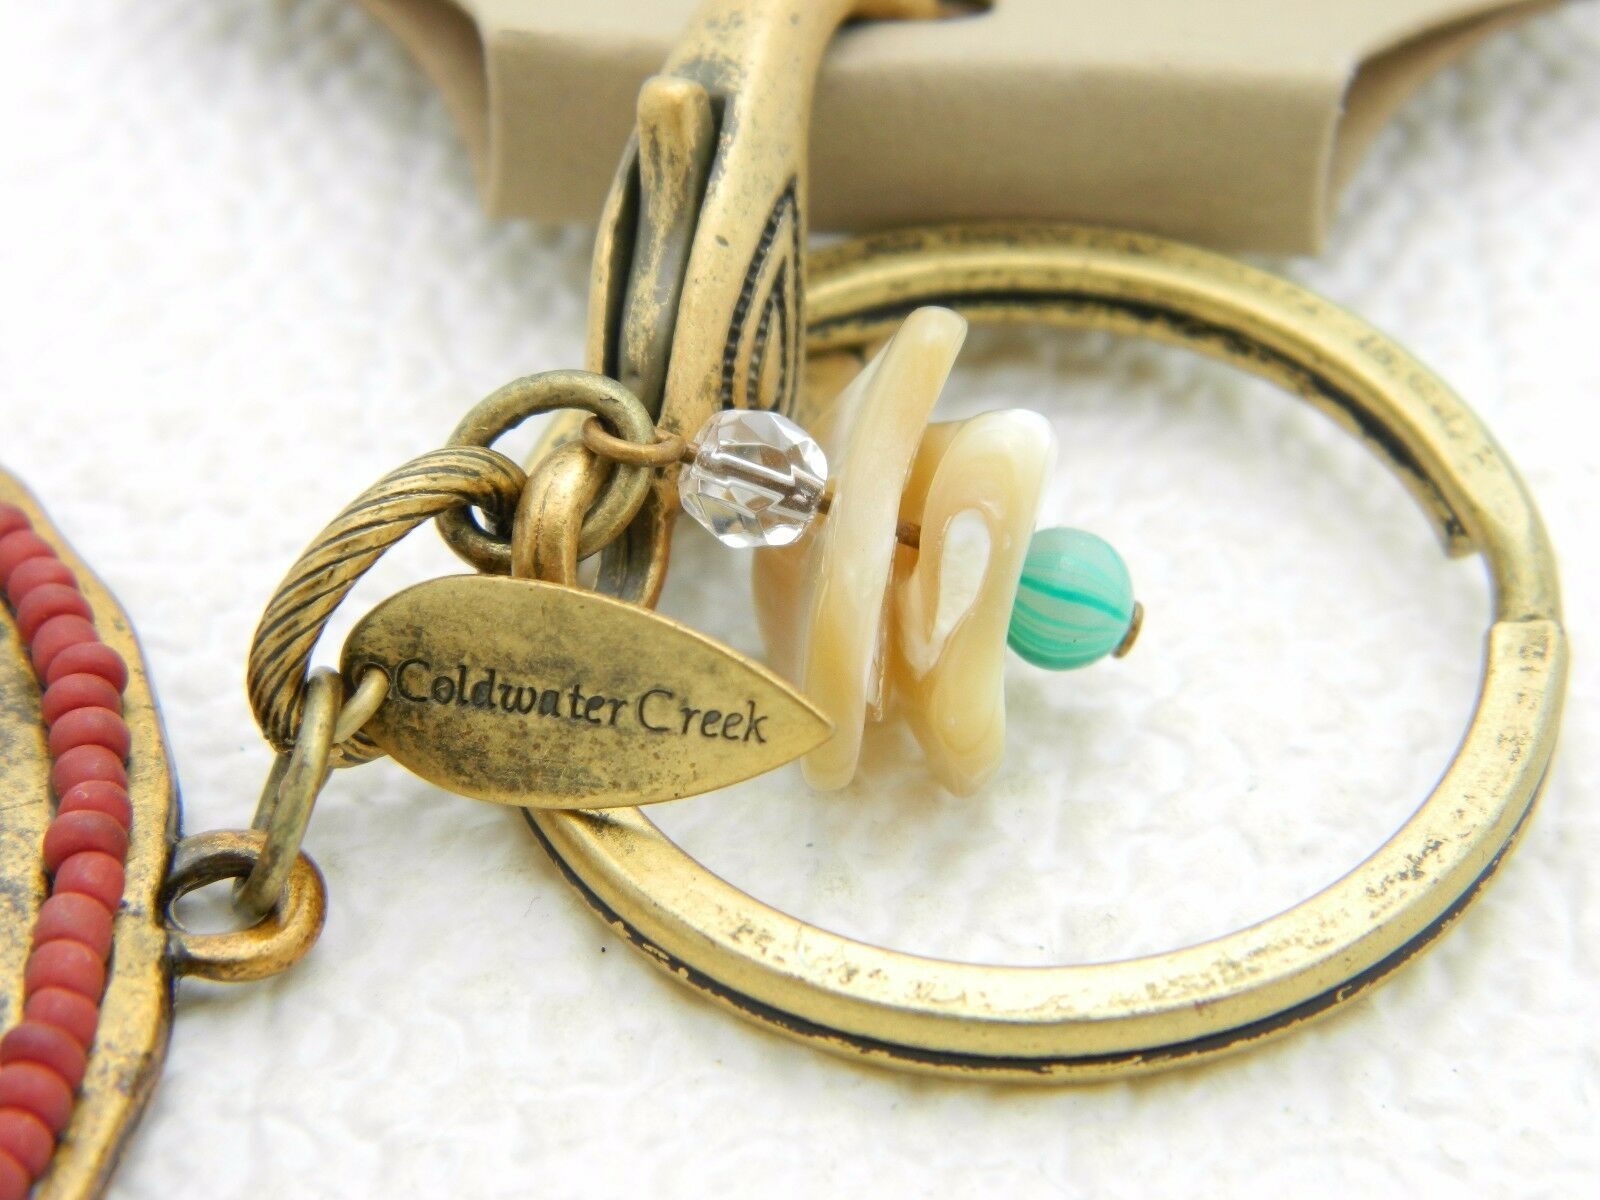 Coldwater Creek Clip On Charm Keychain Purse Sand Dollar Shell